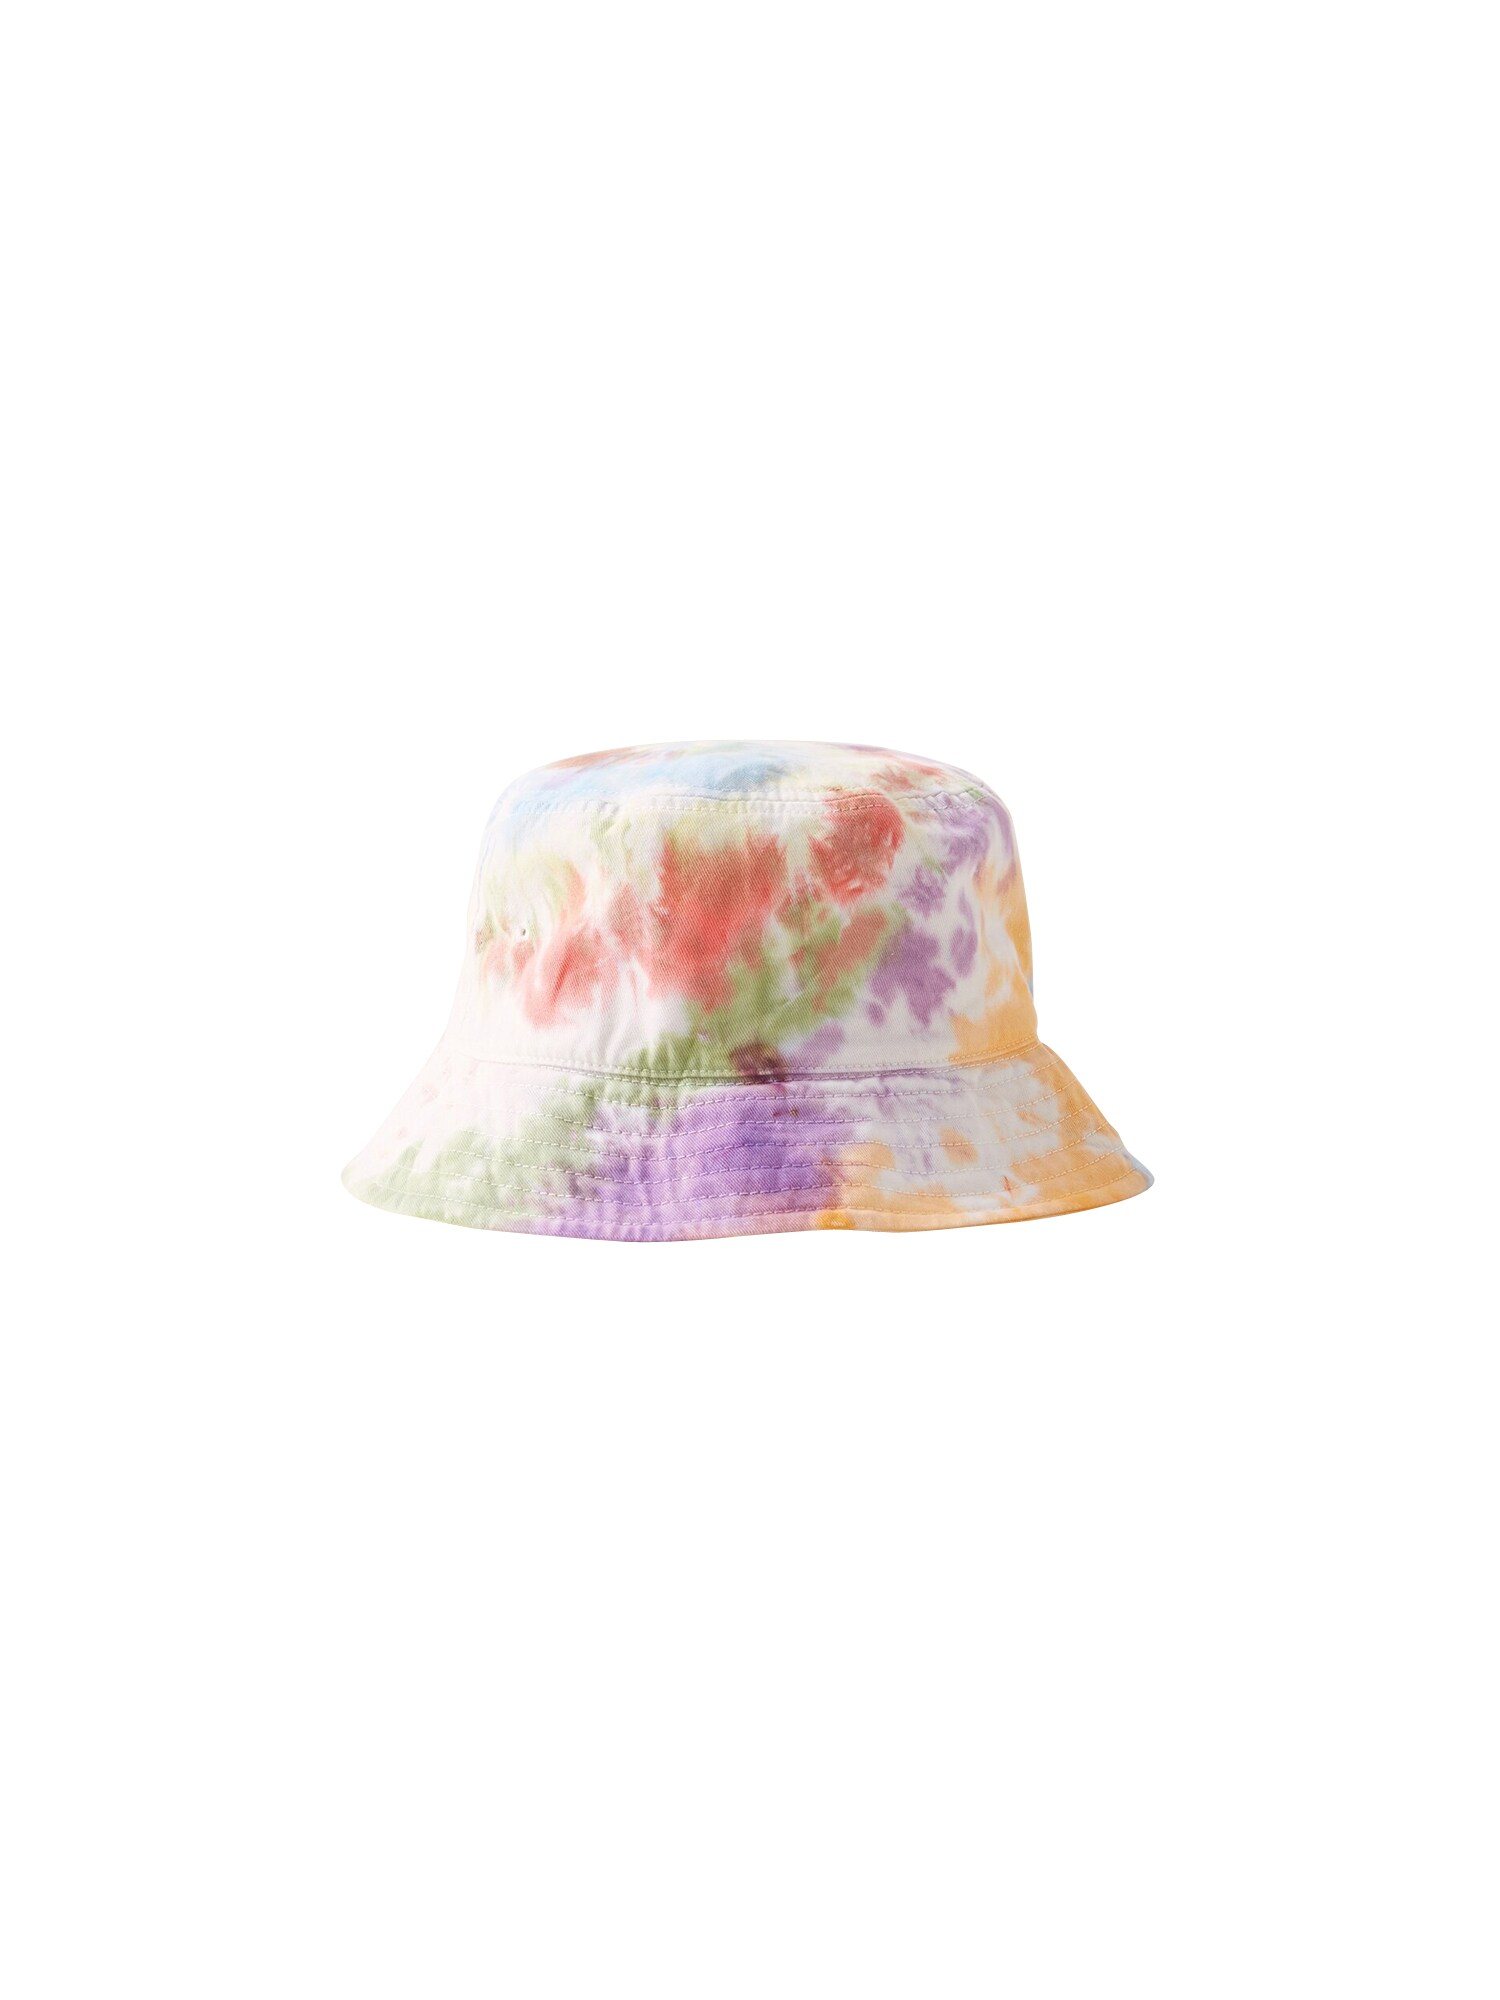 Abercrombie Fitch Klobouk Pride Bucket mix barev Abercrombie & Fitch